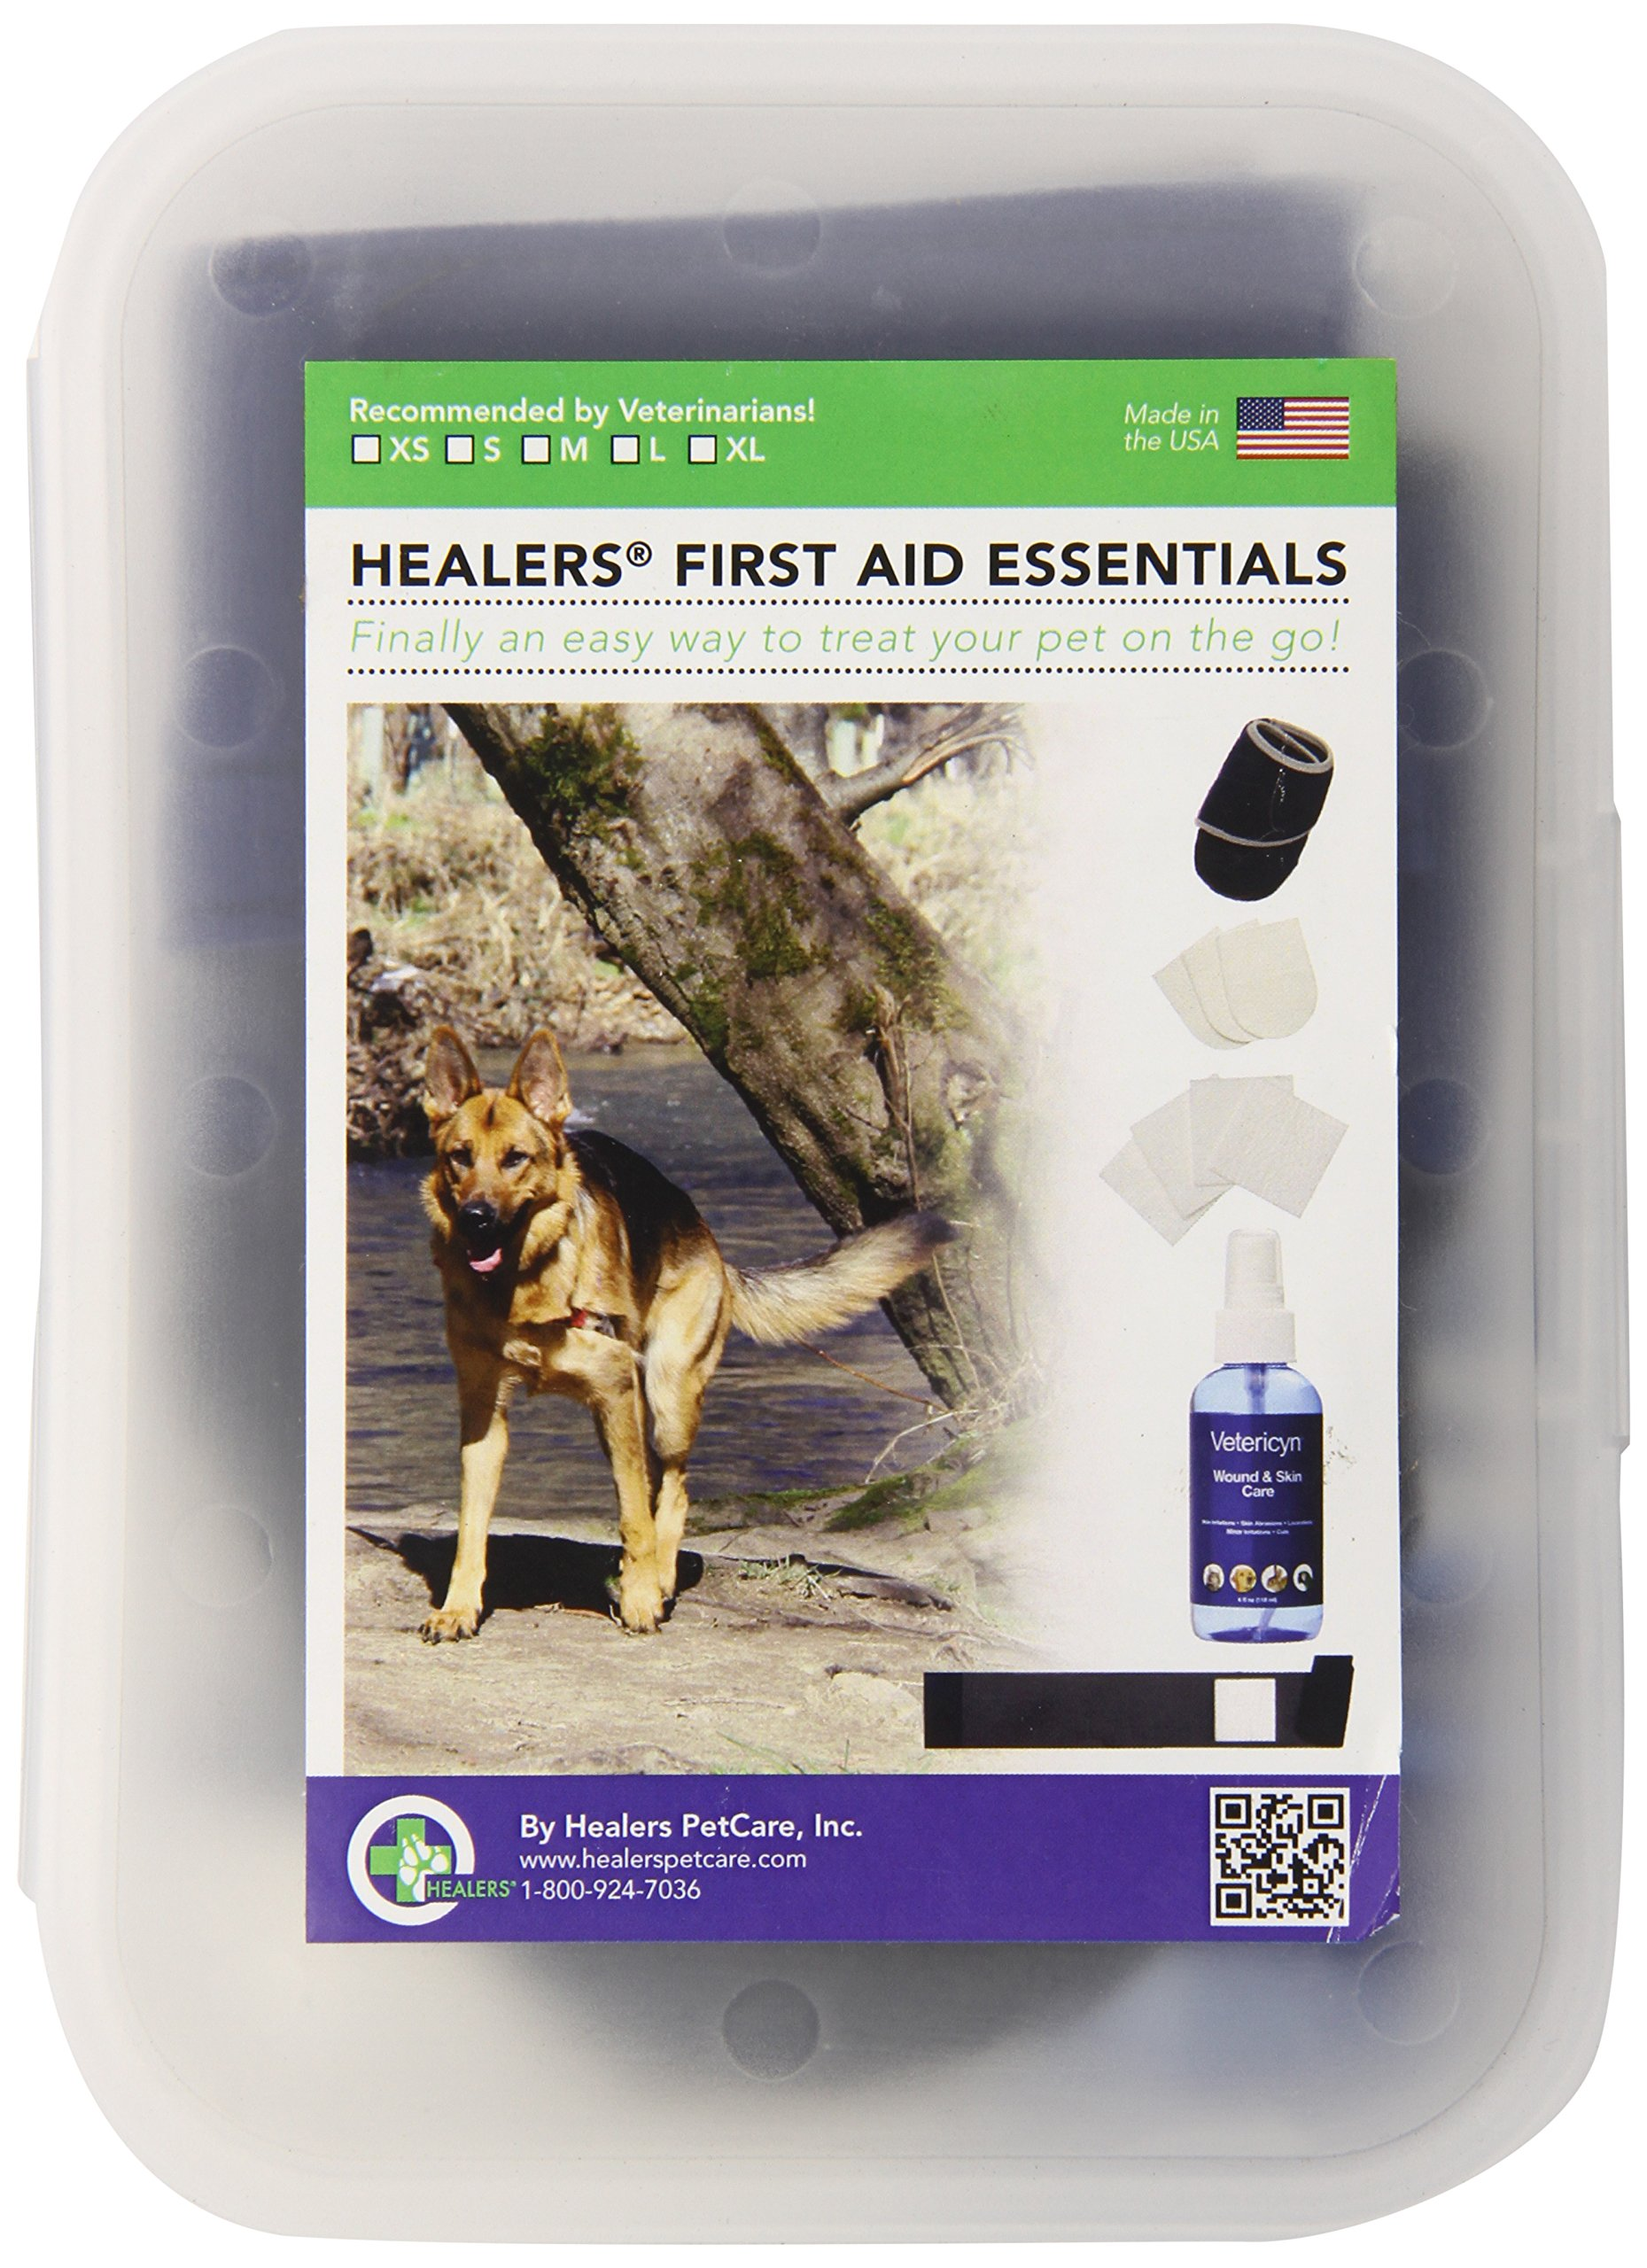 HEALERS PETCARE First Aid Essentials Kit with Vetericyn Spray for Pets, Hard Case, Large